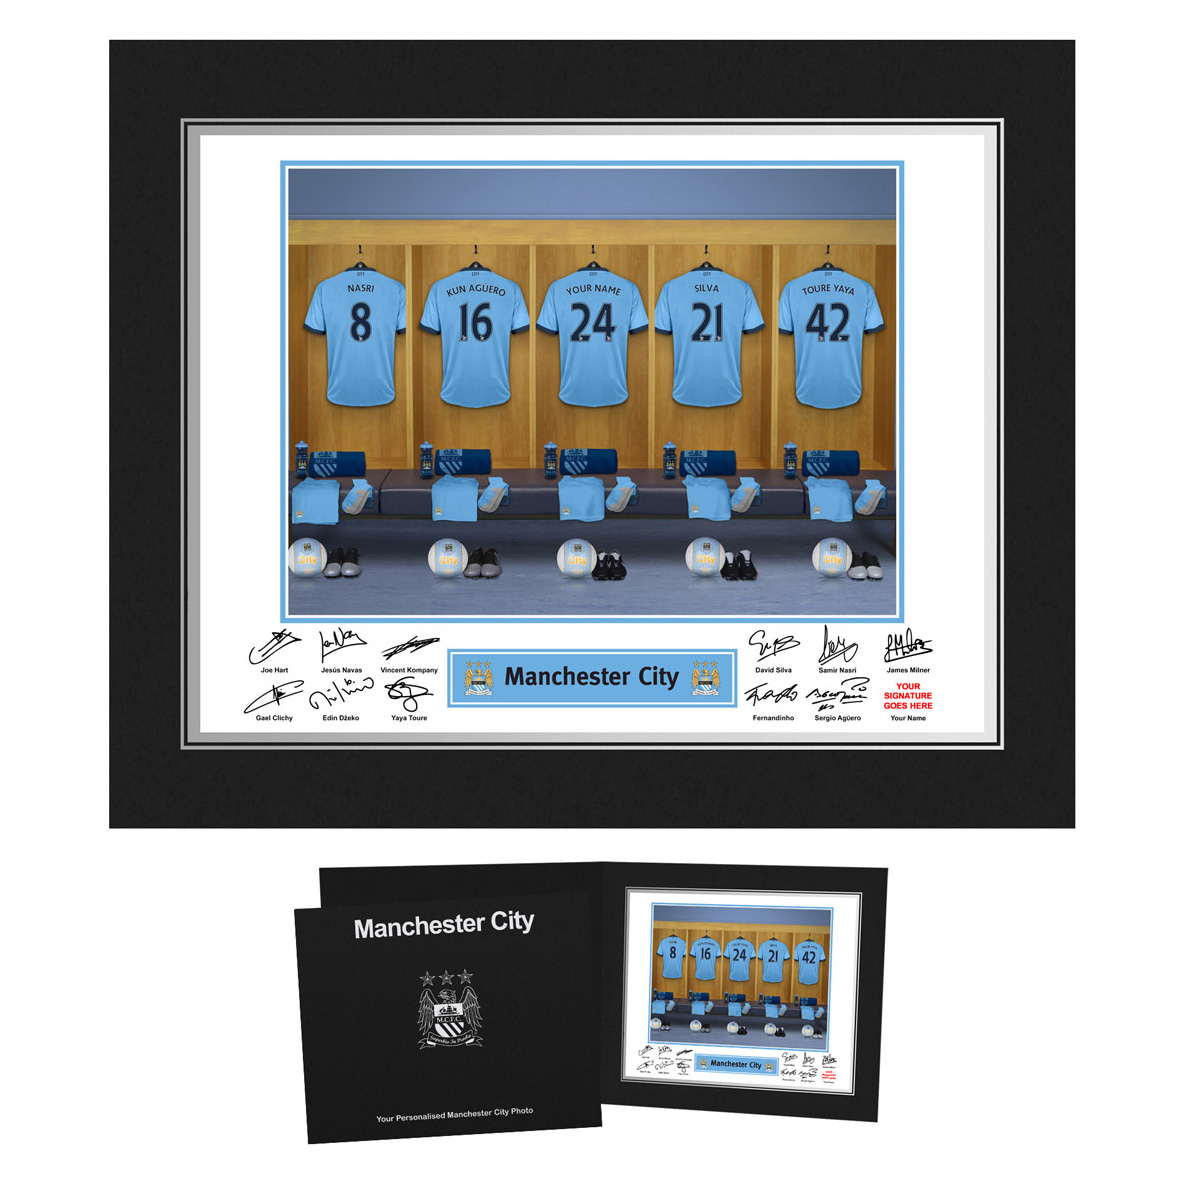 Manchester City Personalised Dressing Room Photo in Presentation Folder